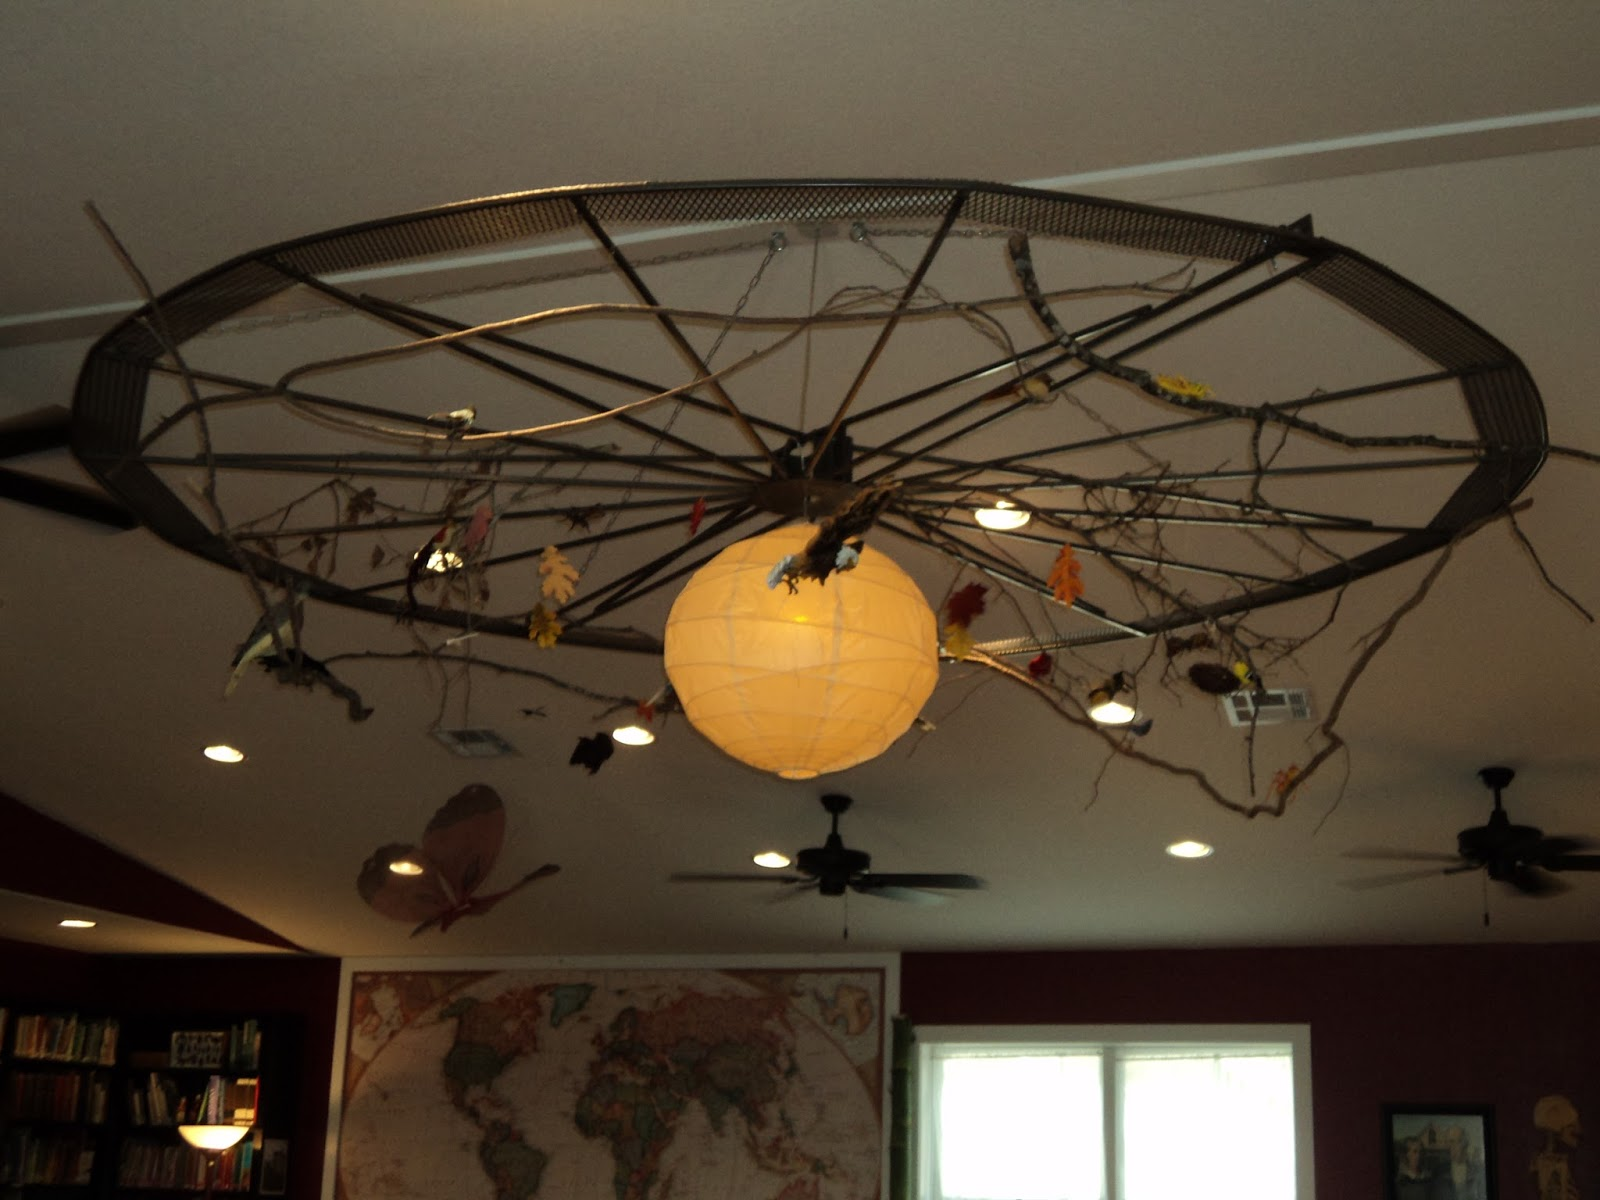 solar system on ceiling paint - photo #32